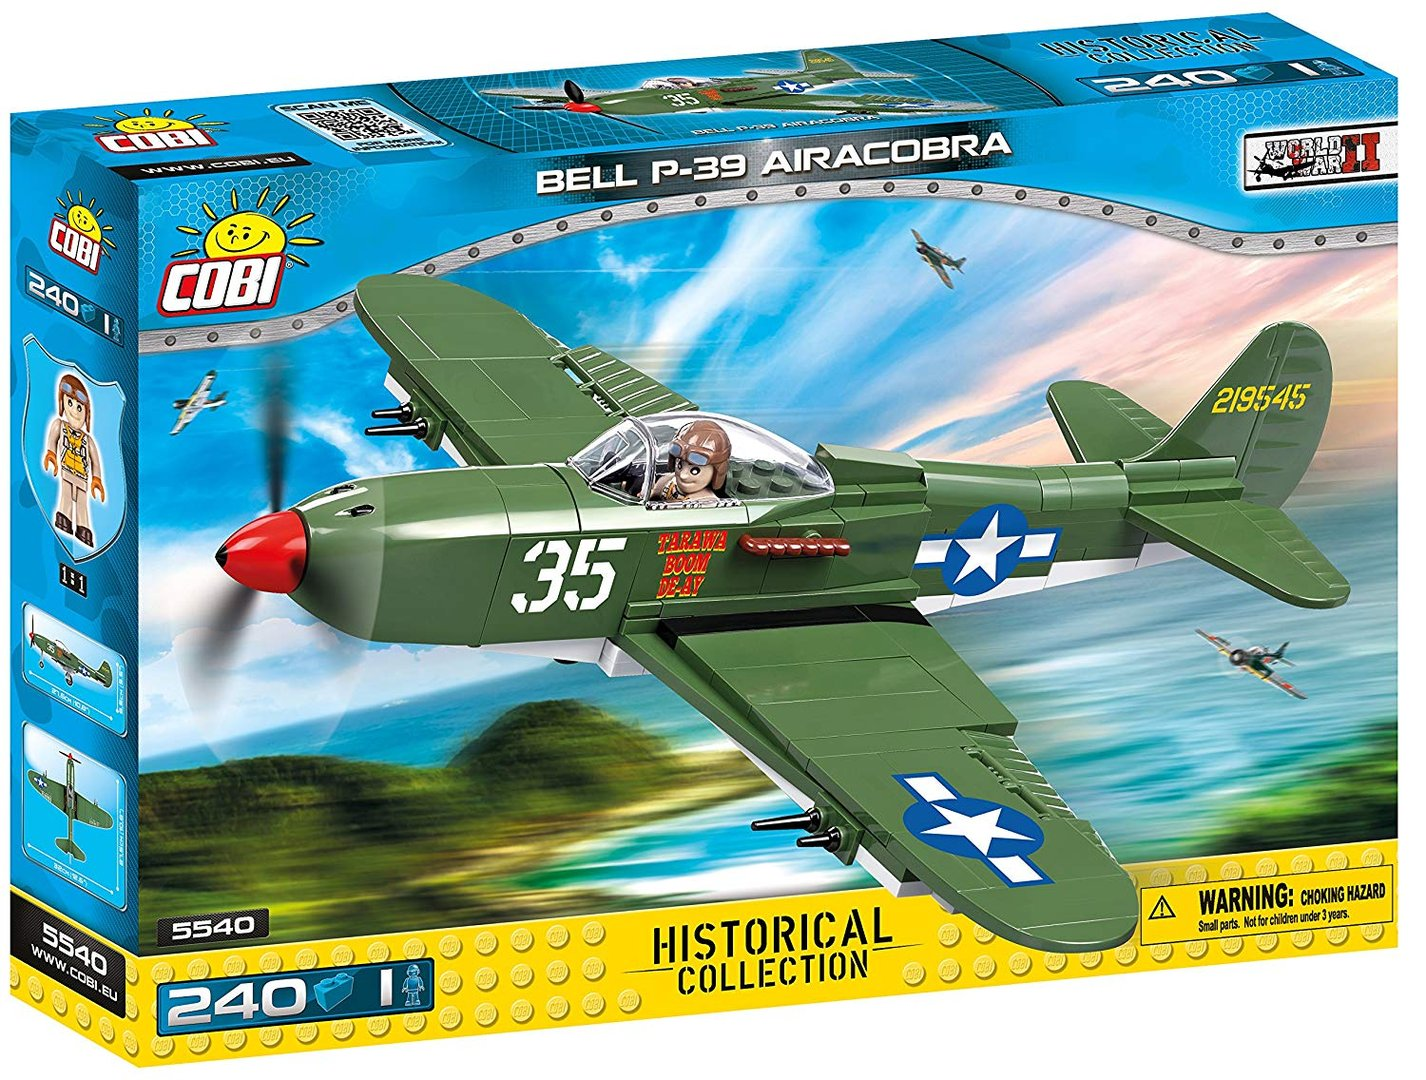 Cobi 5540 US Army Bell P-39 AirCobra  (Historical Collection - WWII - Planes)